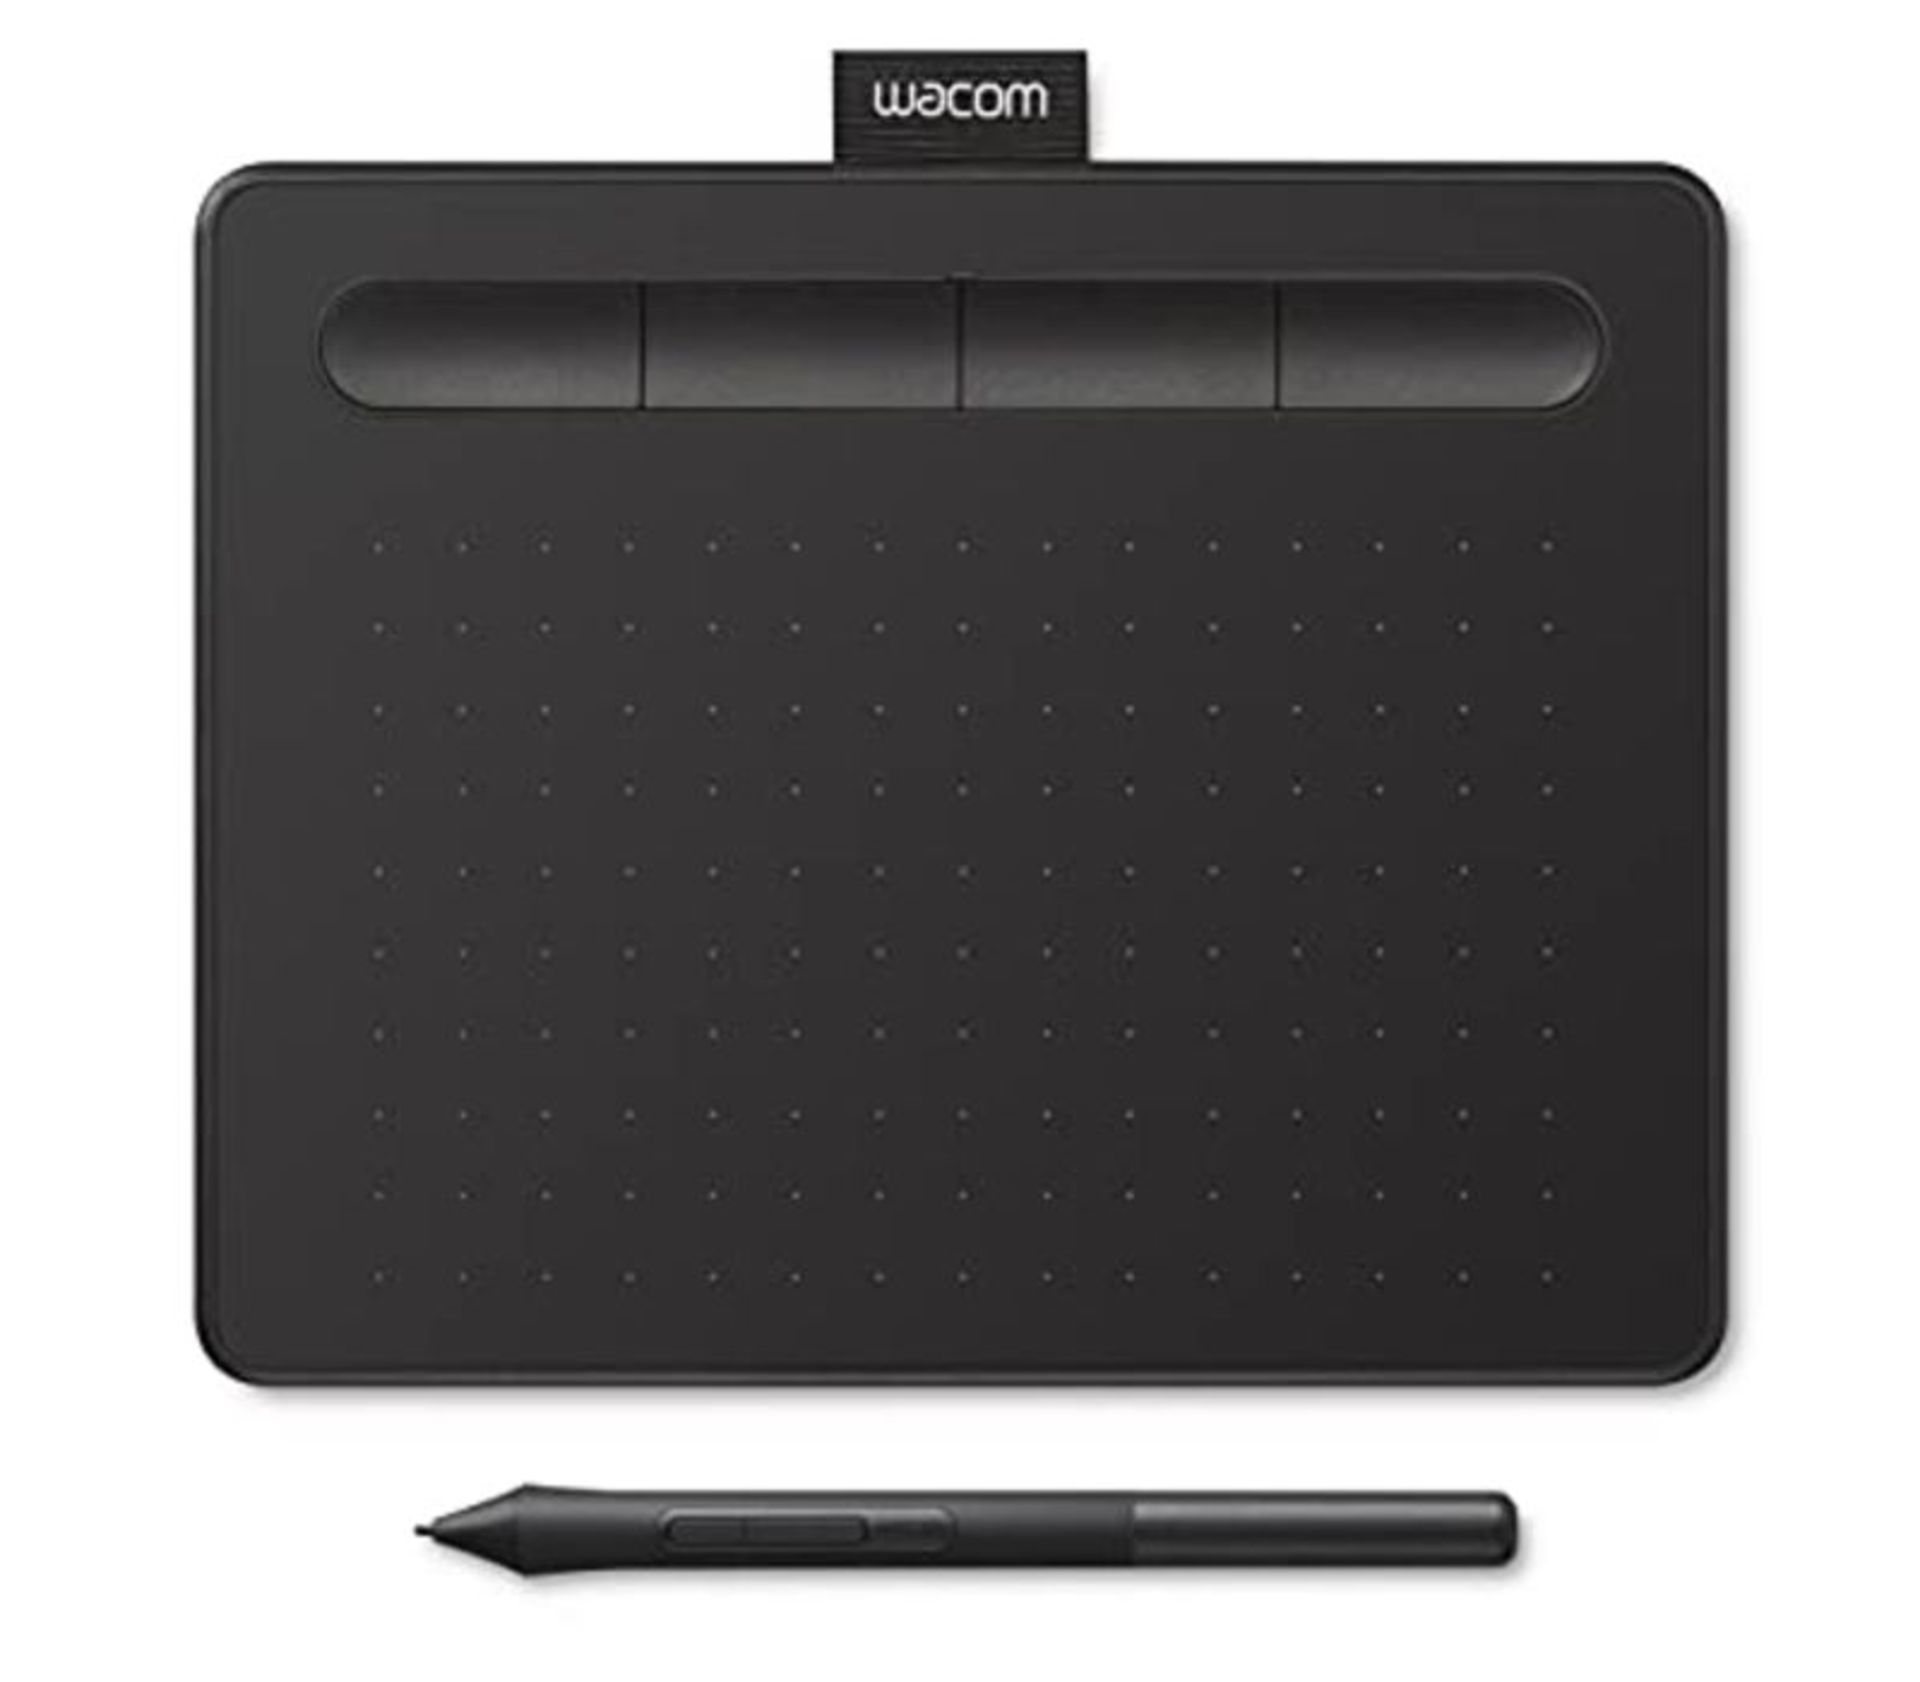 RRP £59.00 Wacom Intuos Small Black, Graphic Tablet for Painting, Sketching and Photo Retouching